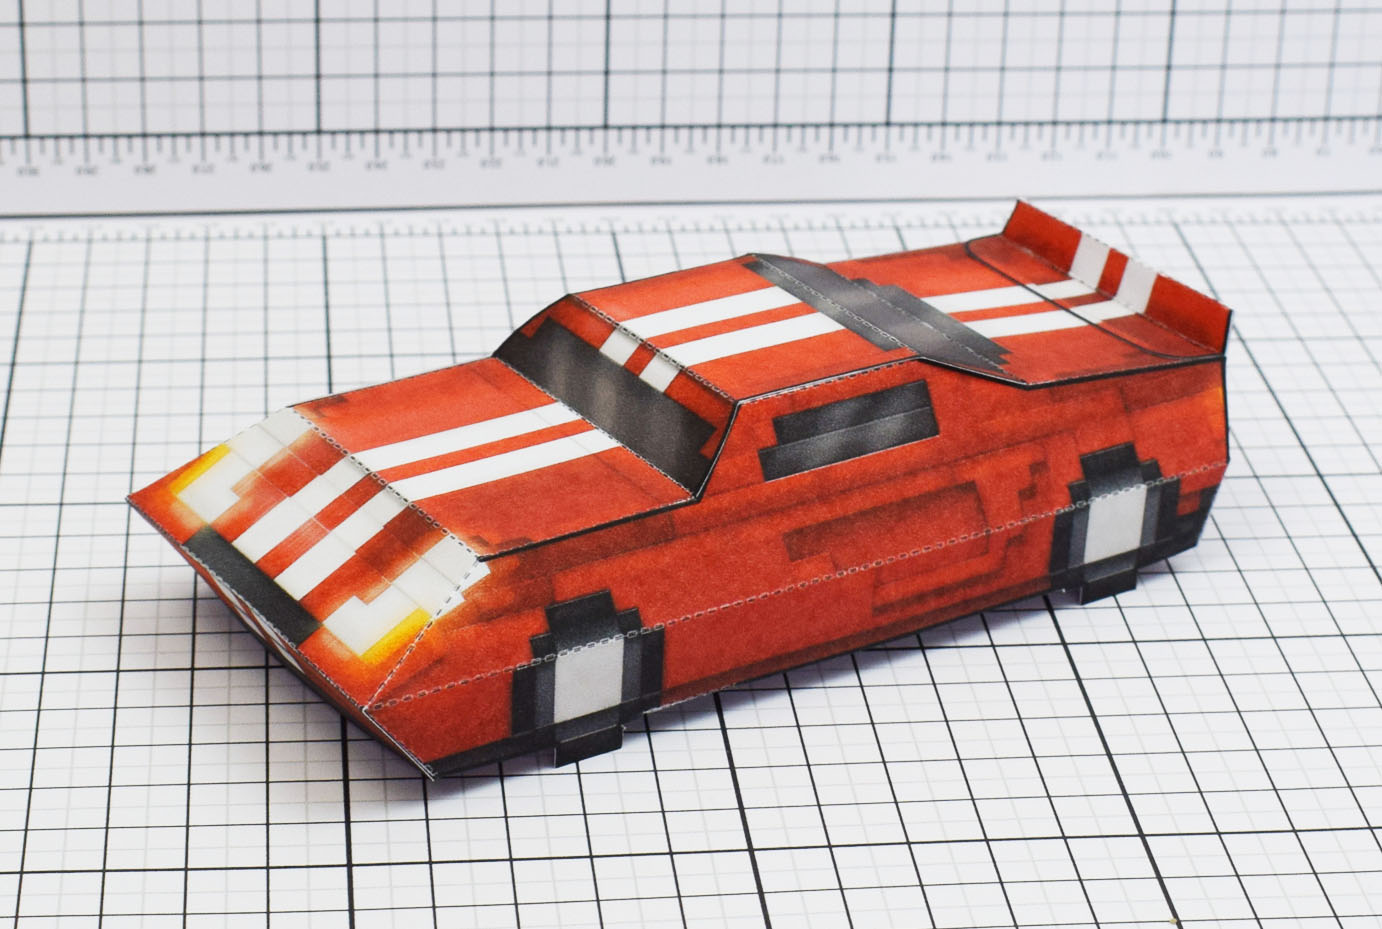 PTI Pixel Maximum Car Lord-GT Paper Toy Image Main